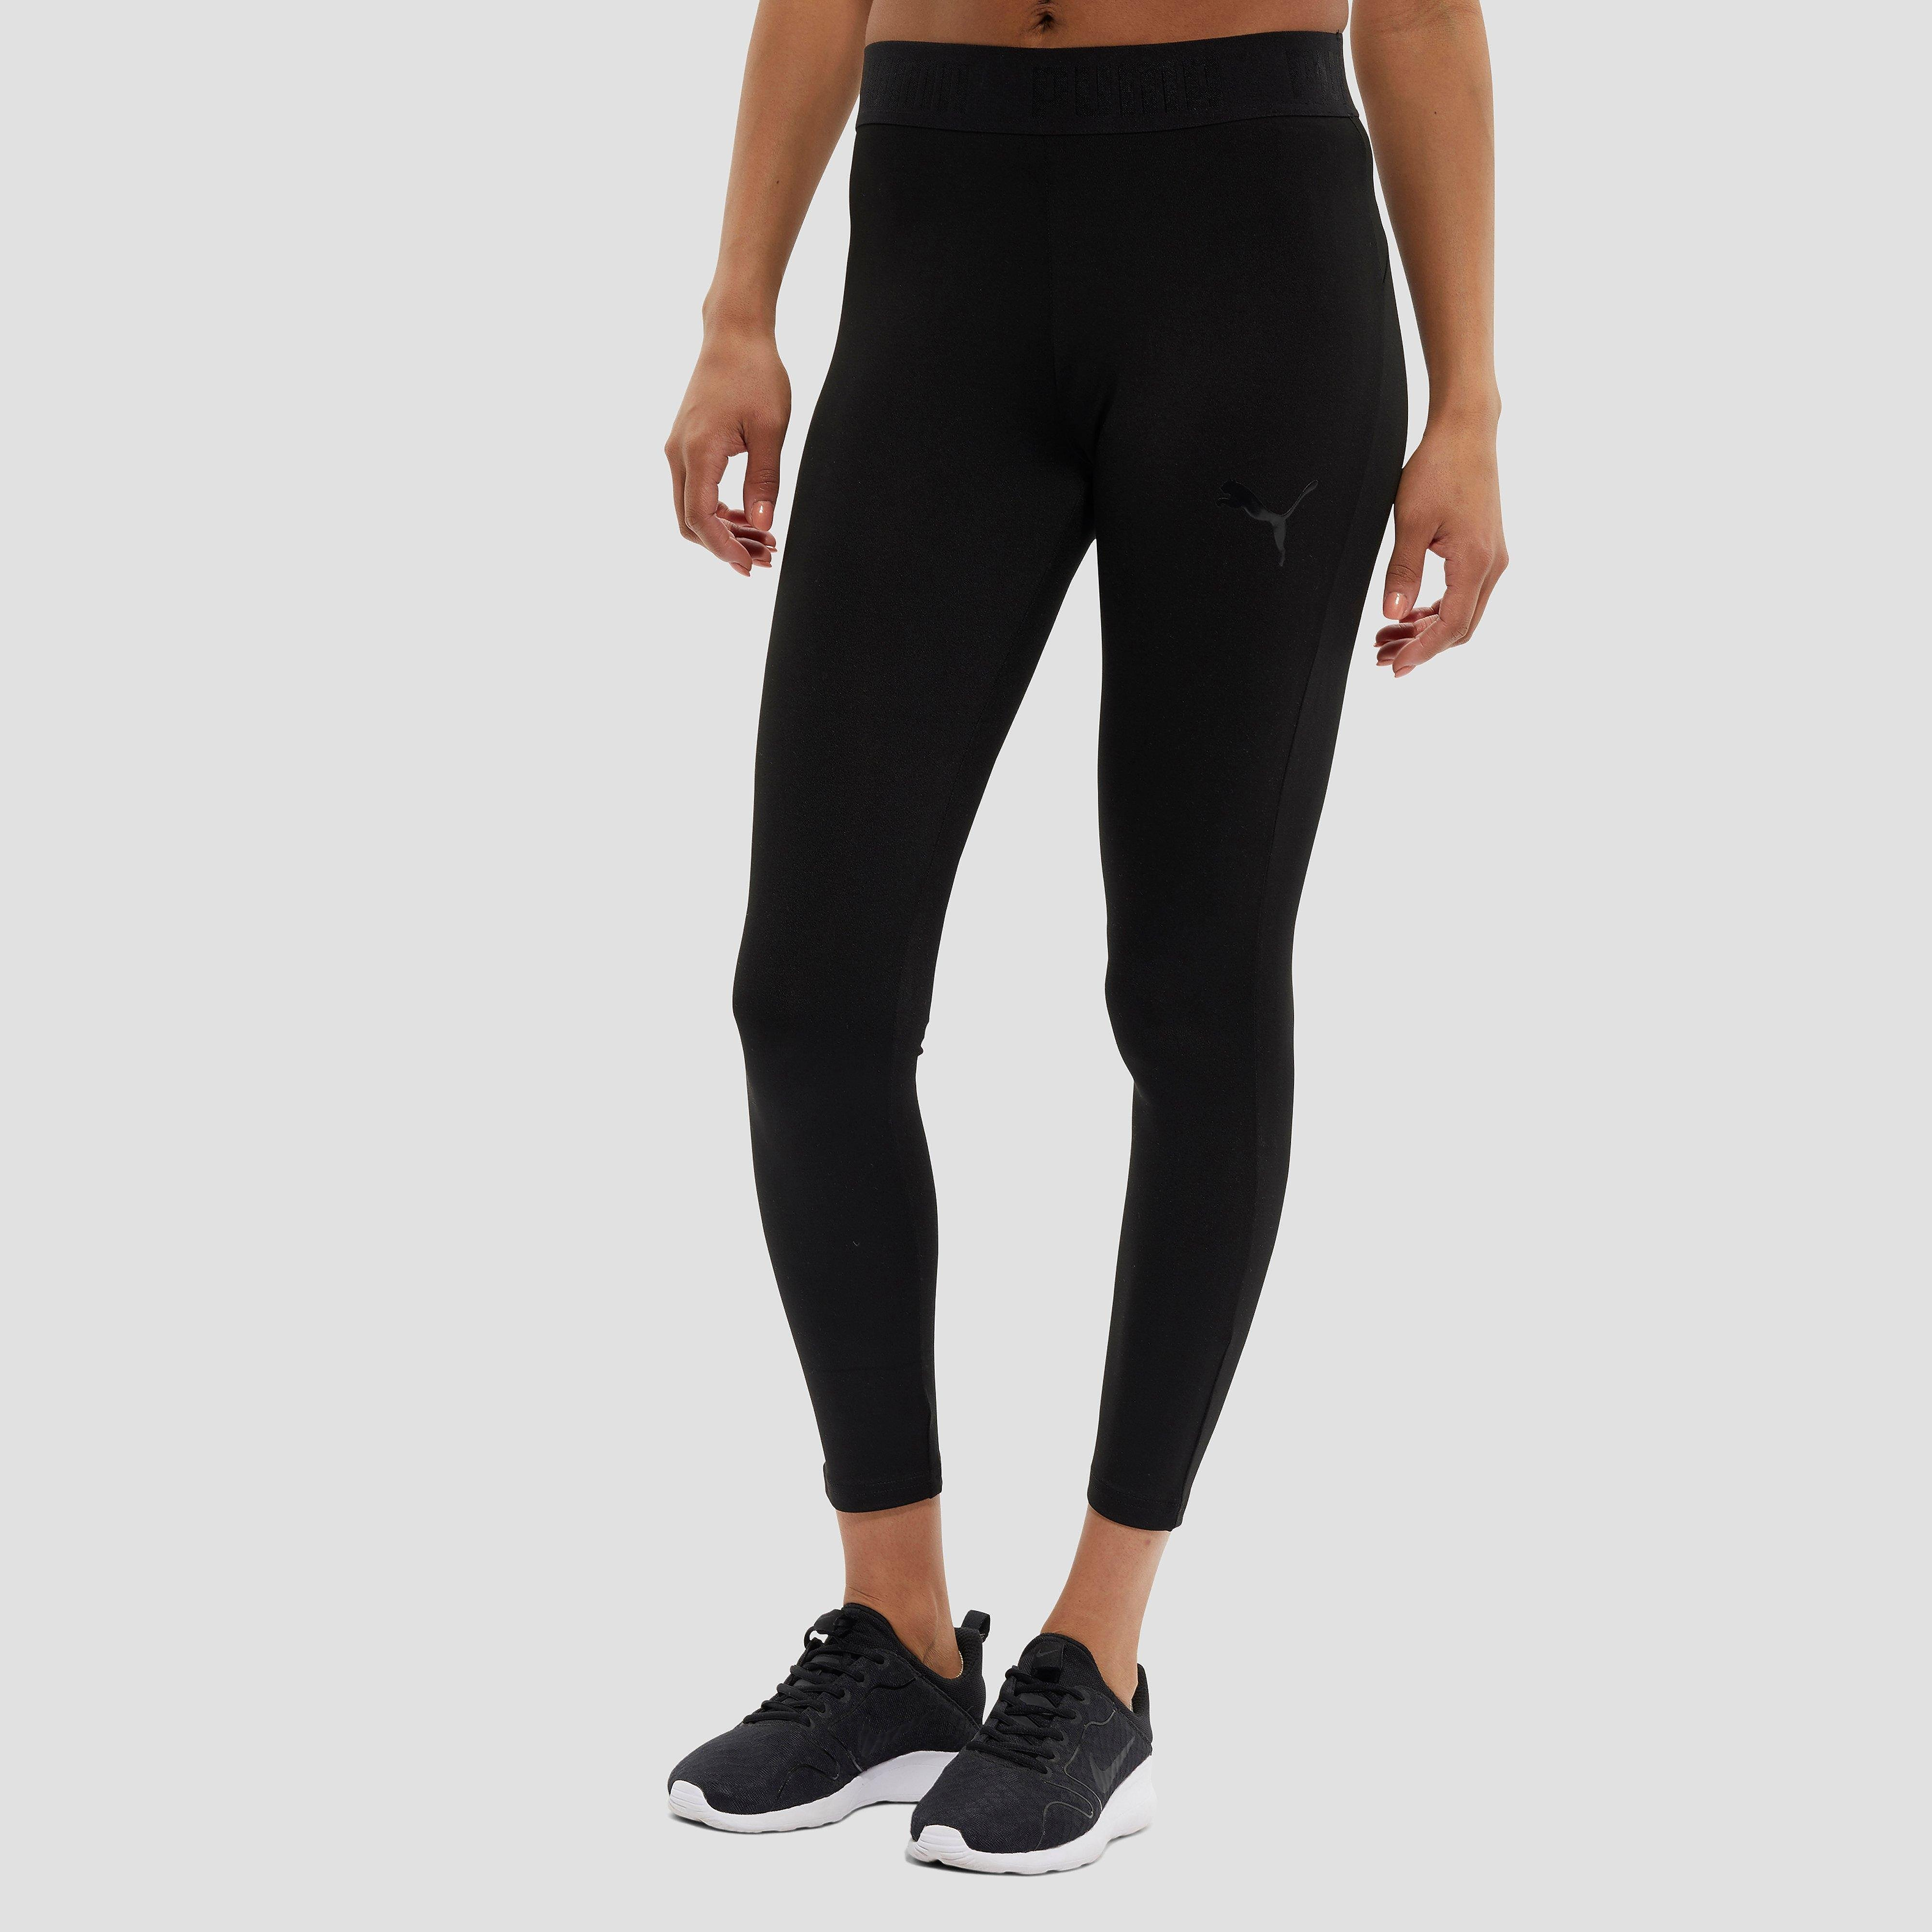 PUMA ACTIVE ESSENTIAL BANDED TIGHT ZWART DAMES